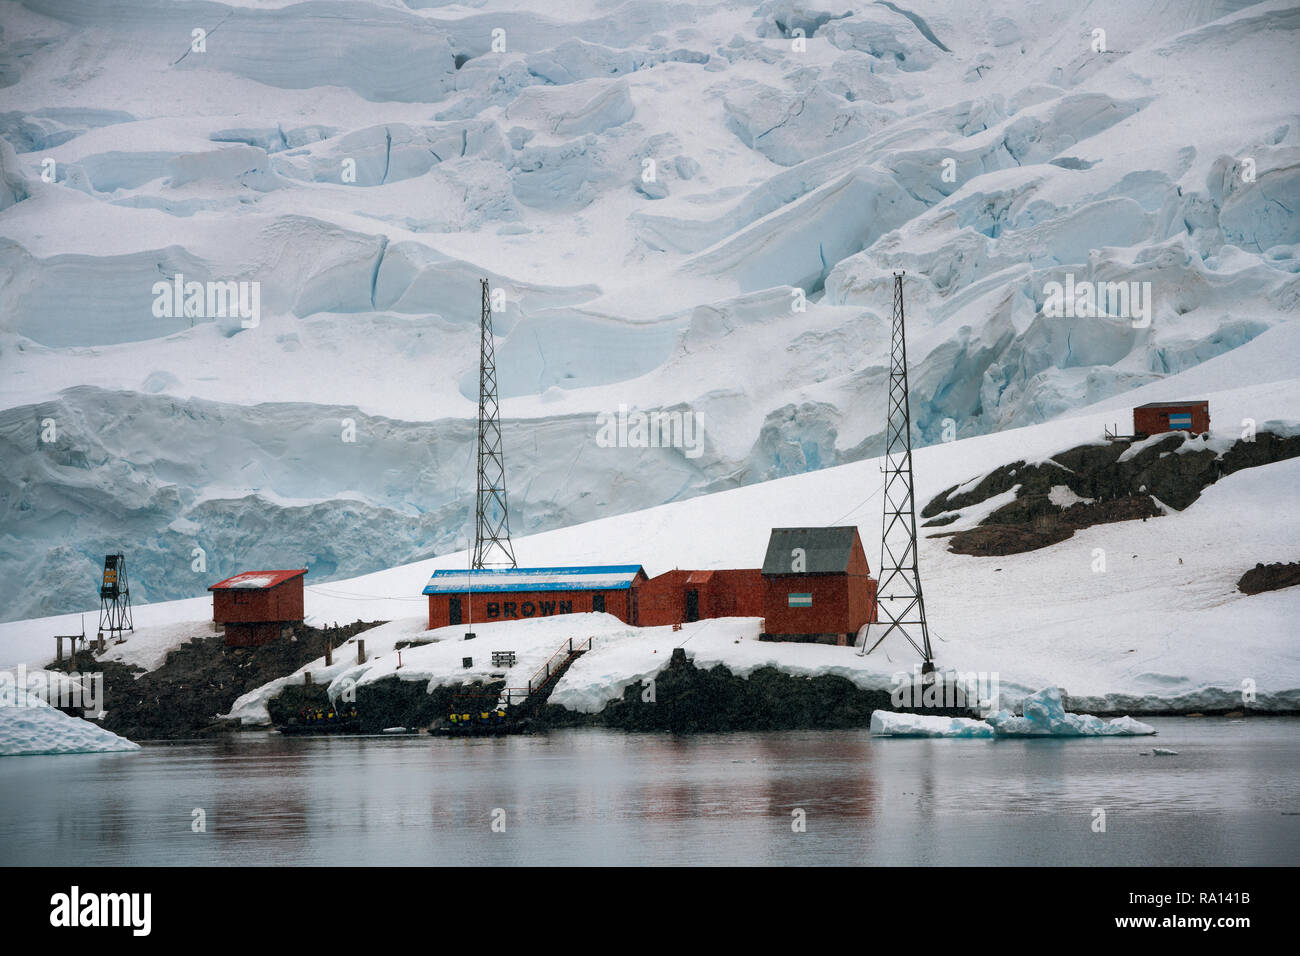 Argentinian Brown Station in Antarctica - Stock Image